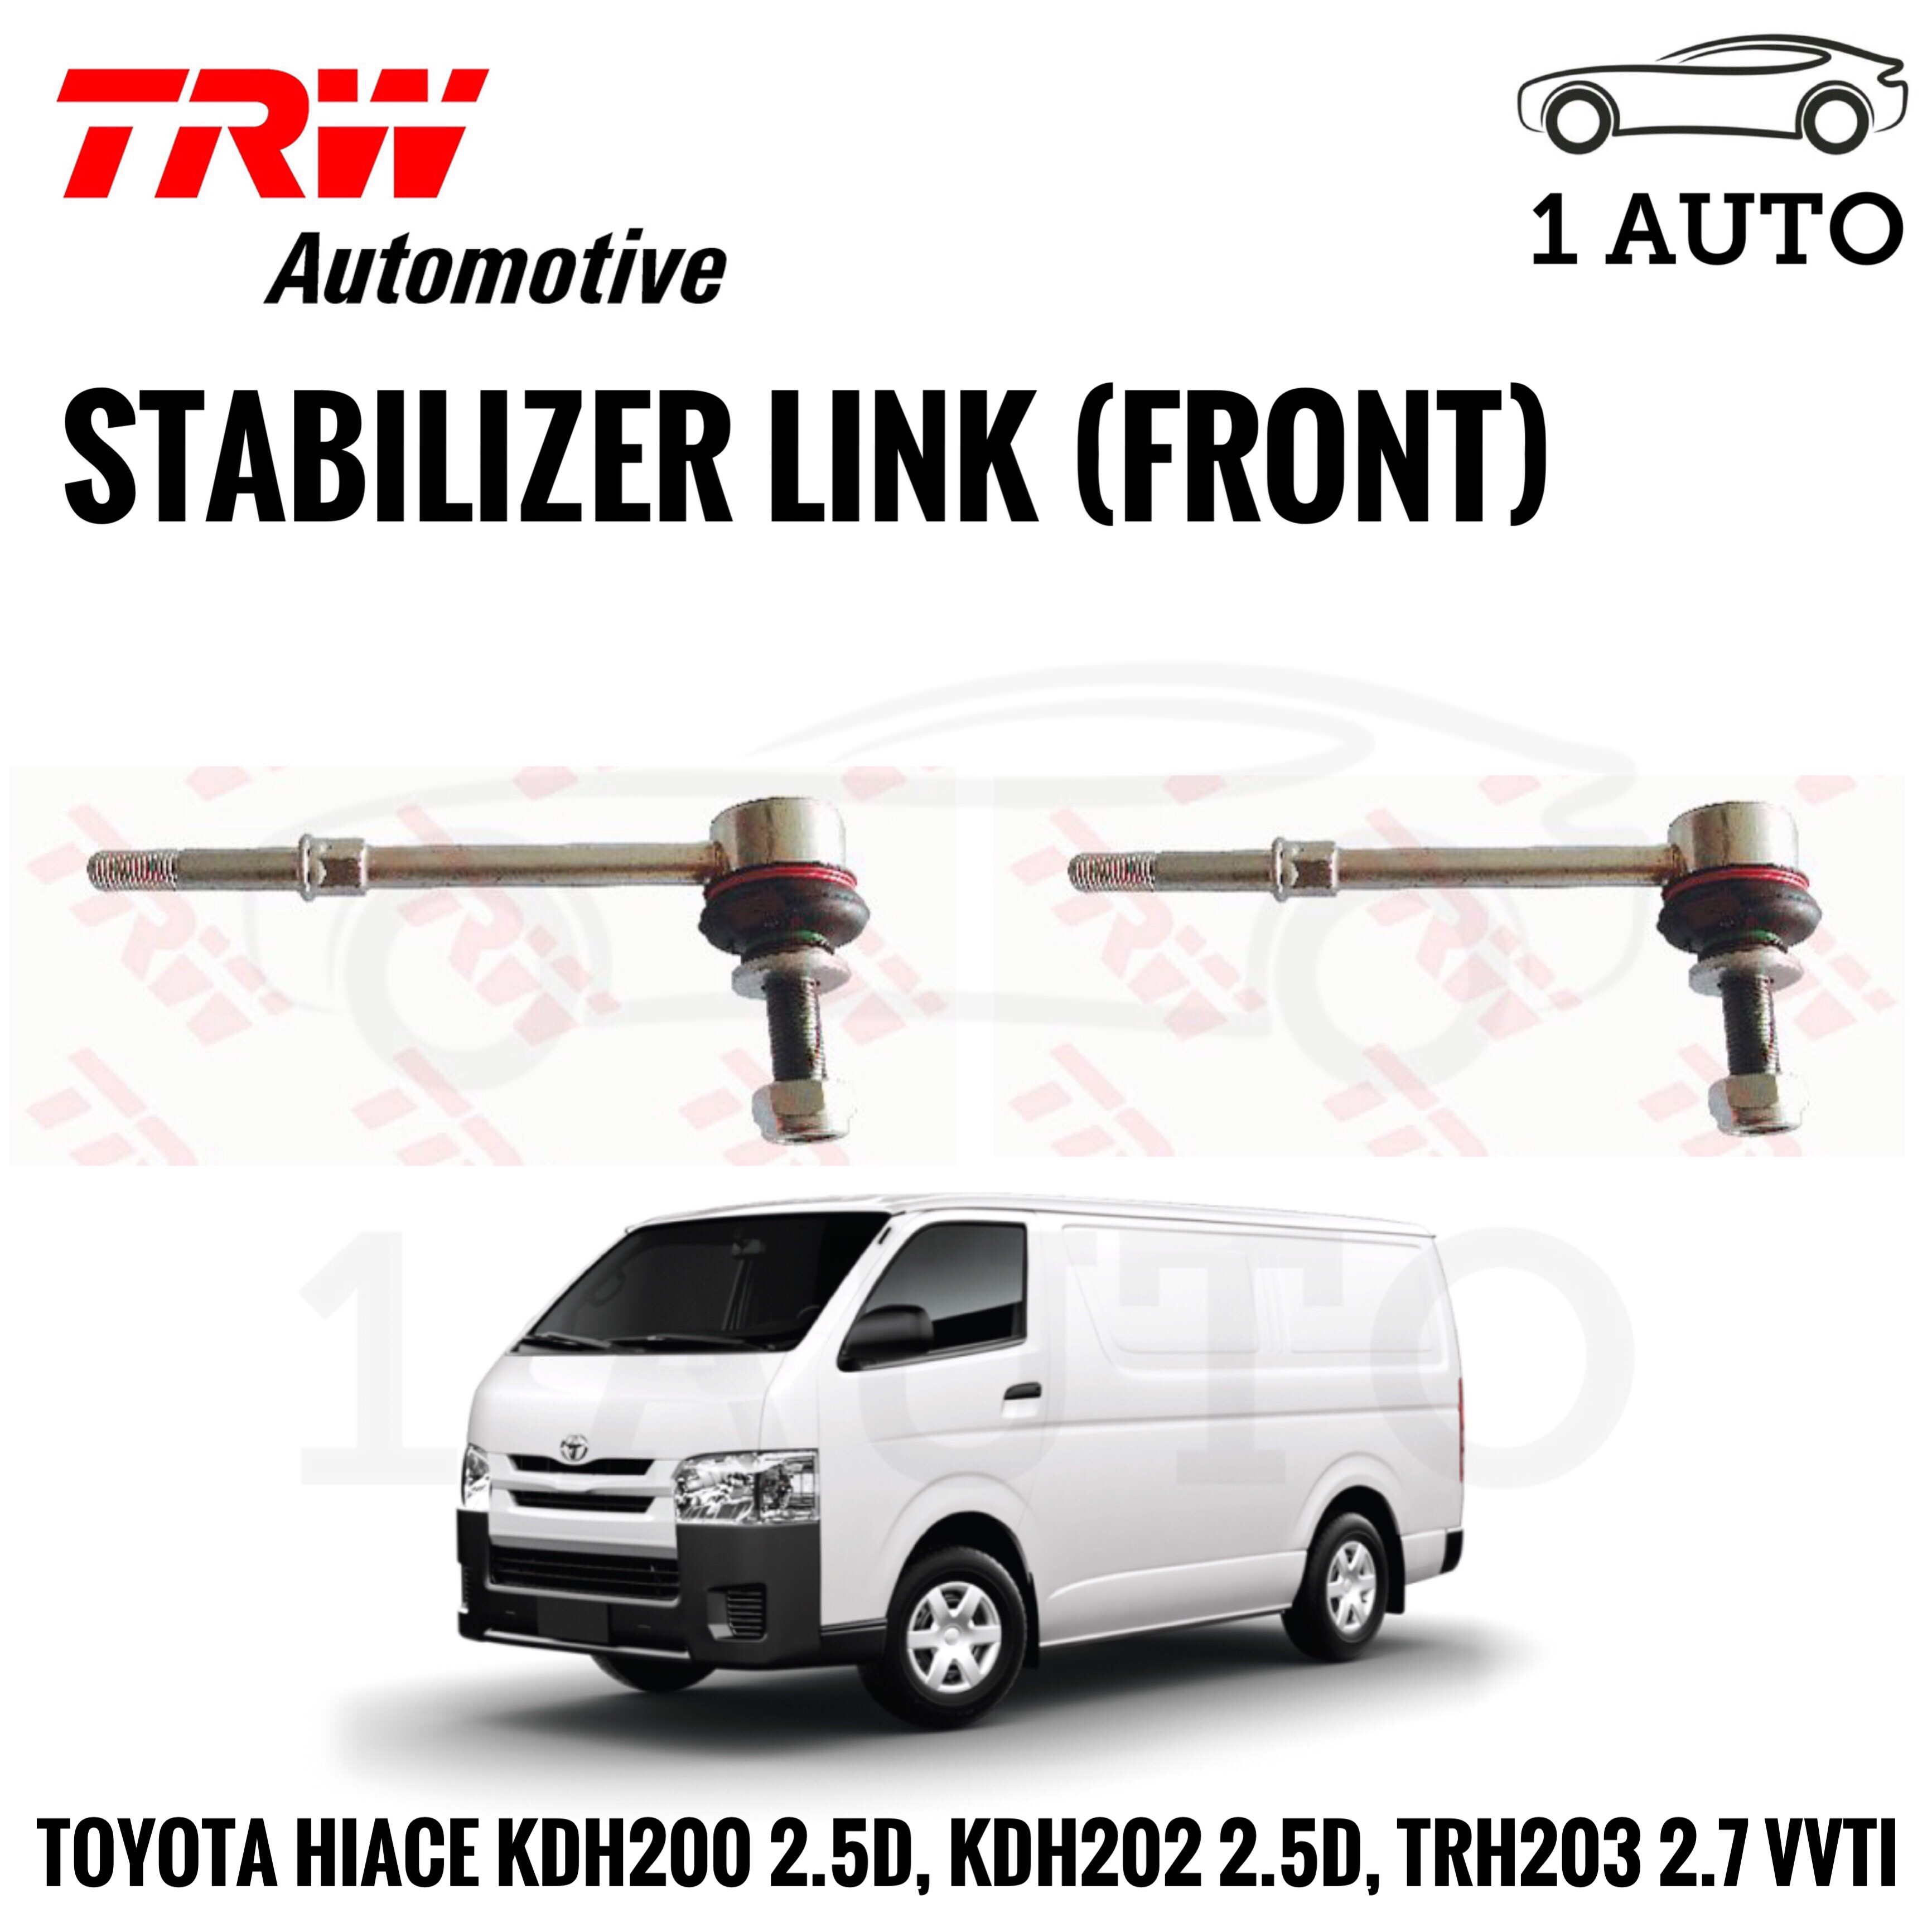 TRW FRONT STABILIZER LINK for TOYOTA HIACE KDH200 2 5D, KDH202 2 5D,